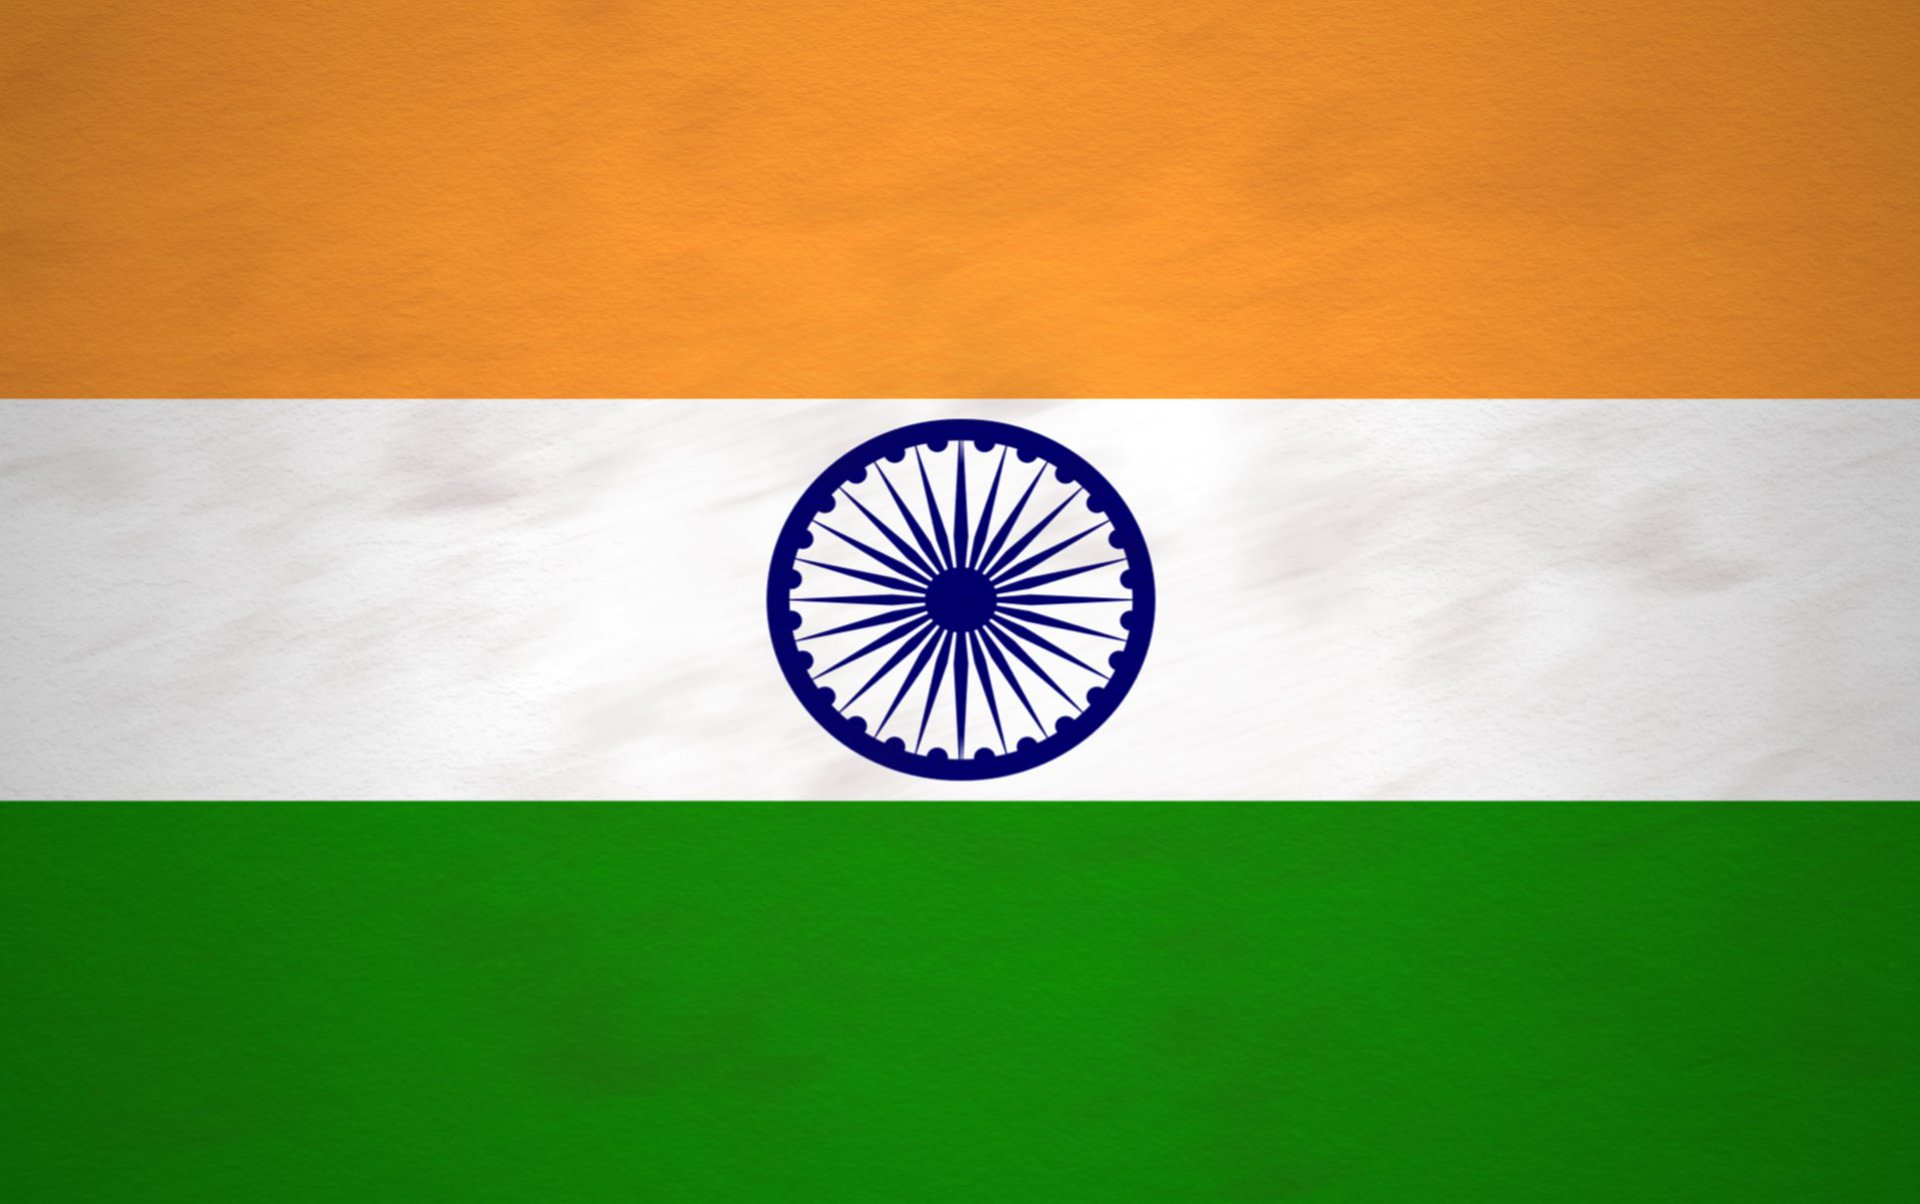 Independence Day Wallpaper Hd 2017 Download Indian Flag Hd Images For Whatsapp Dp Profile Wallpapers